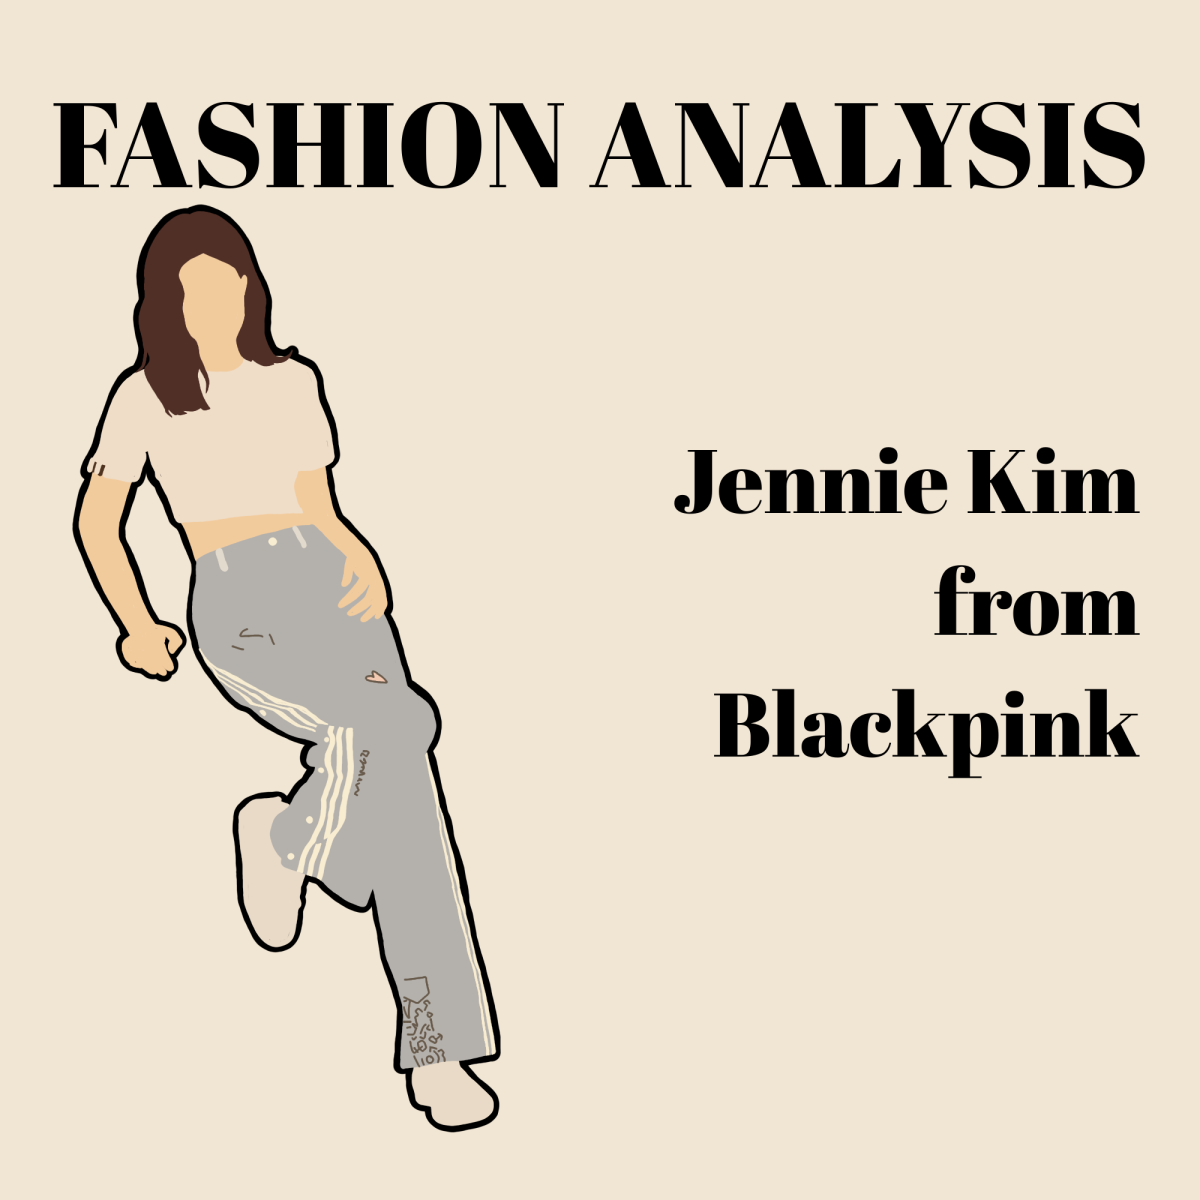 A drawing of Jennie